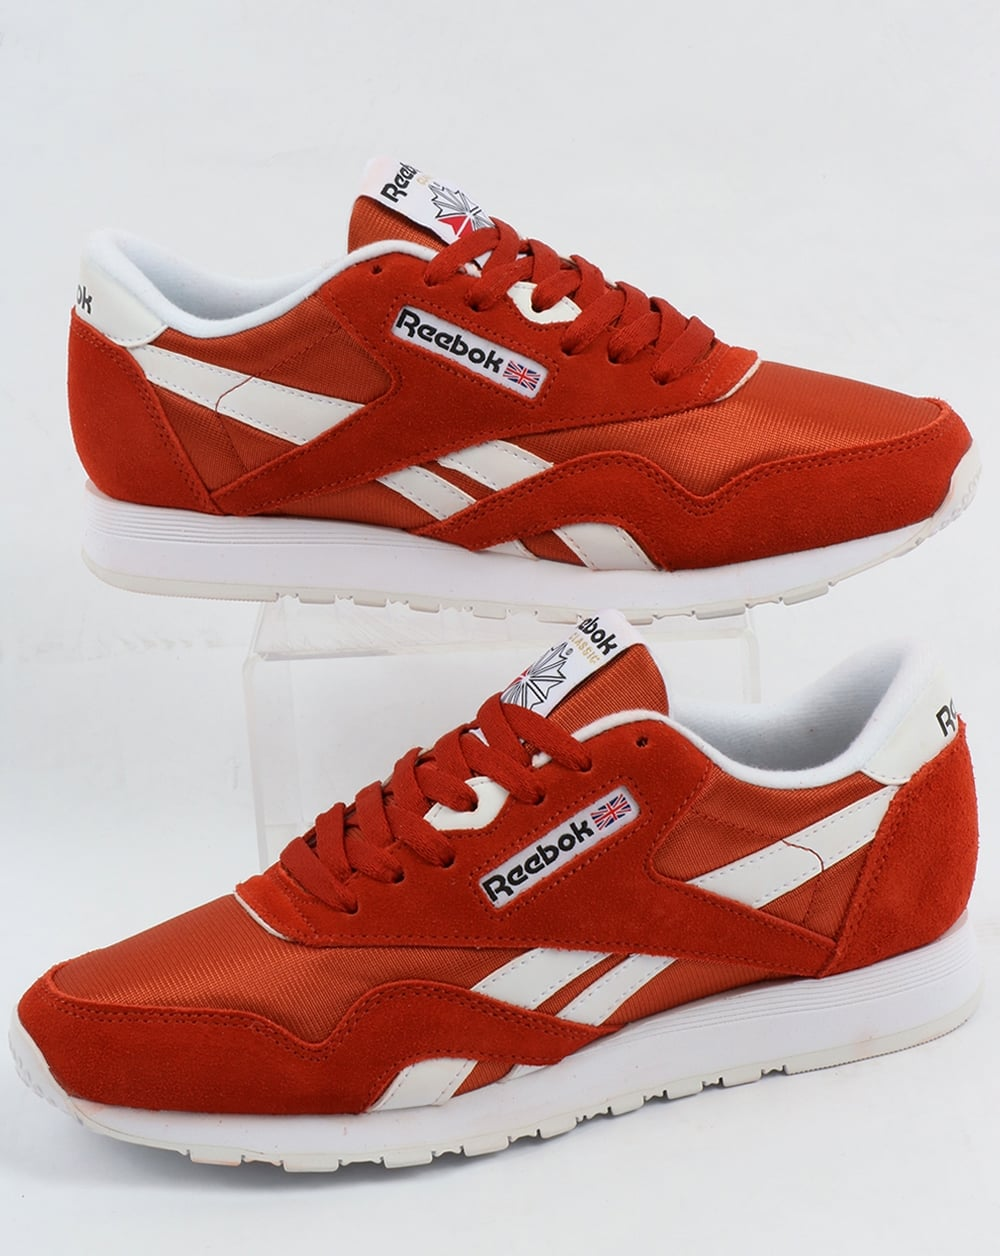 reebok classic nylon trainers burnt orange shoes runners mens. Black Bedroom Furniture Sets. Home Design Ideas